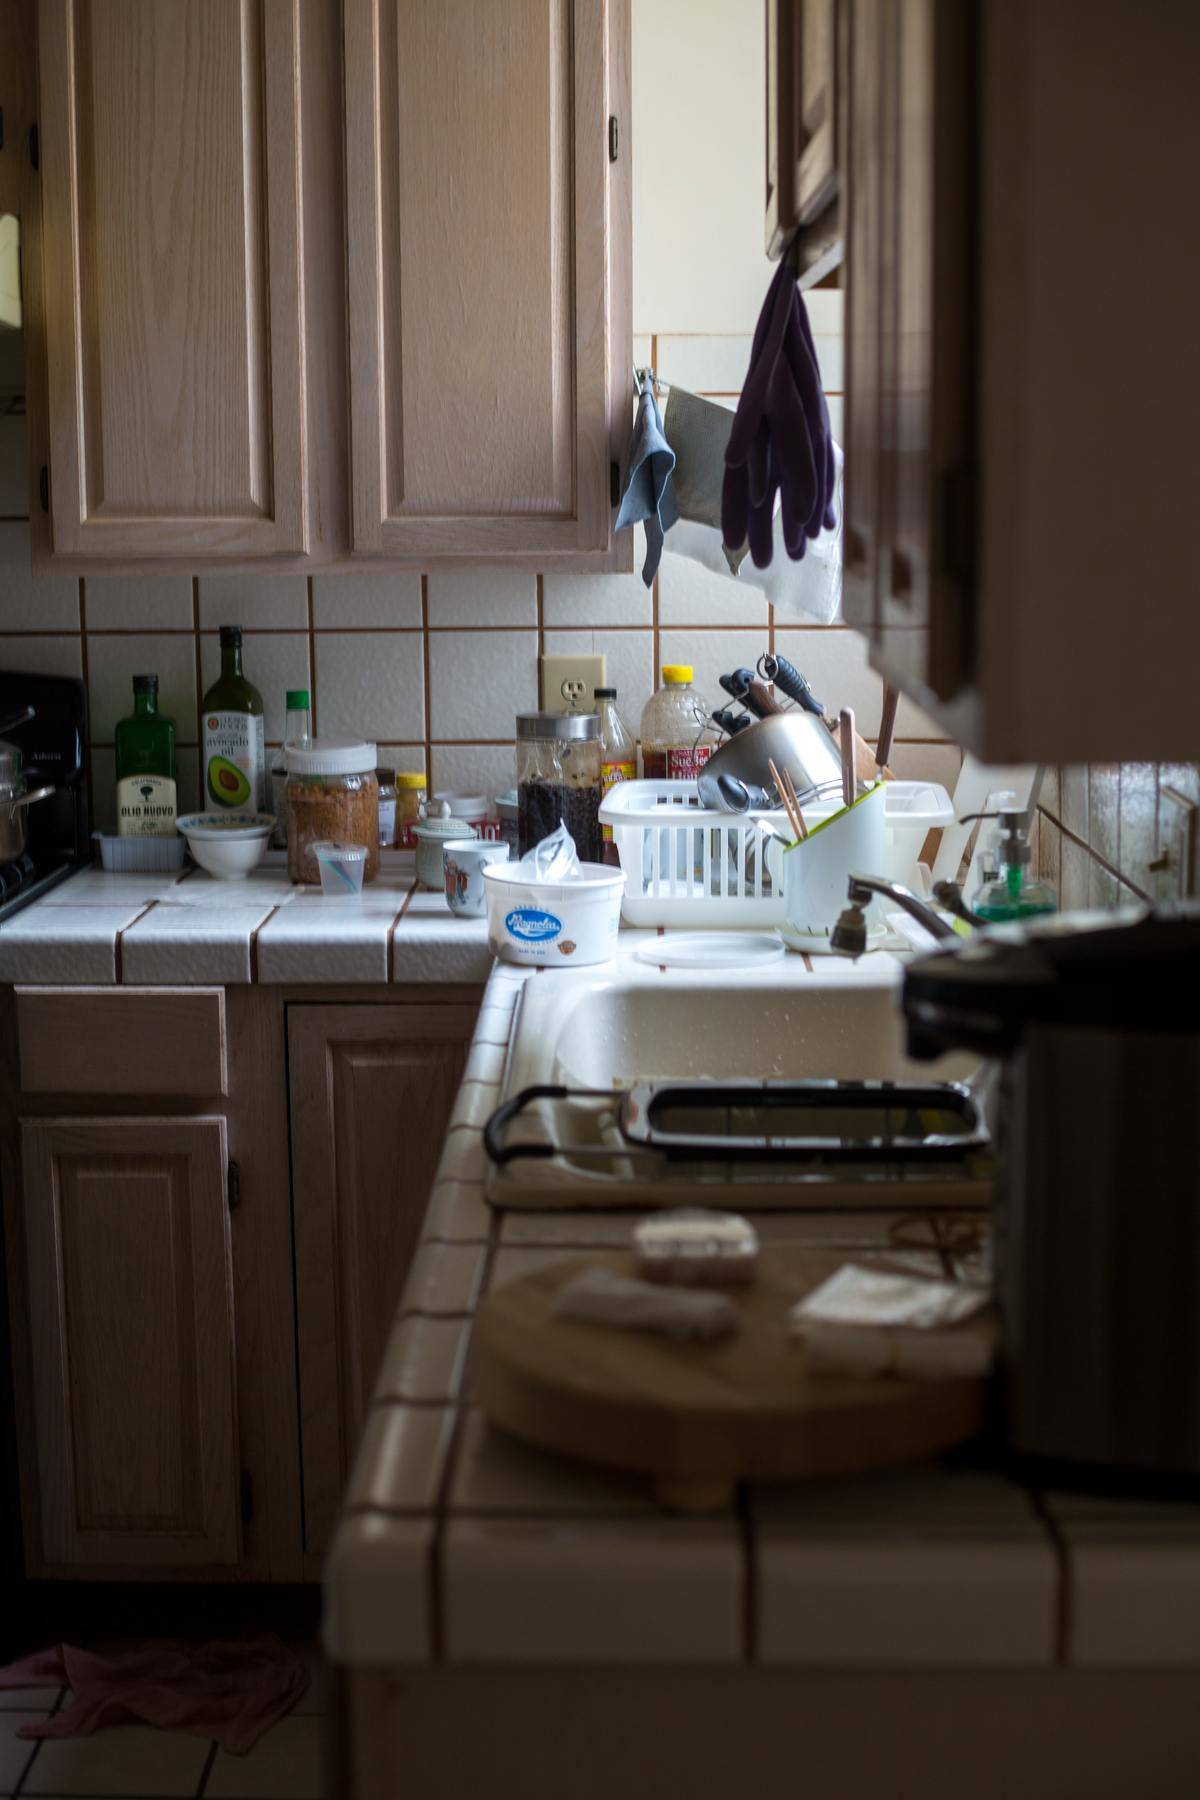 Messy kitchen with dishes falling out of sink